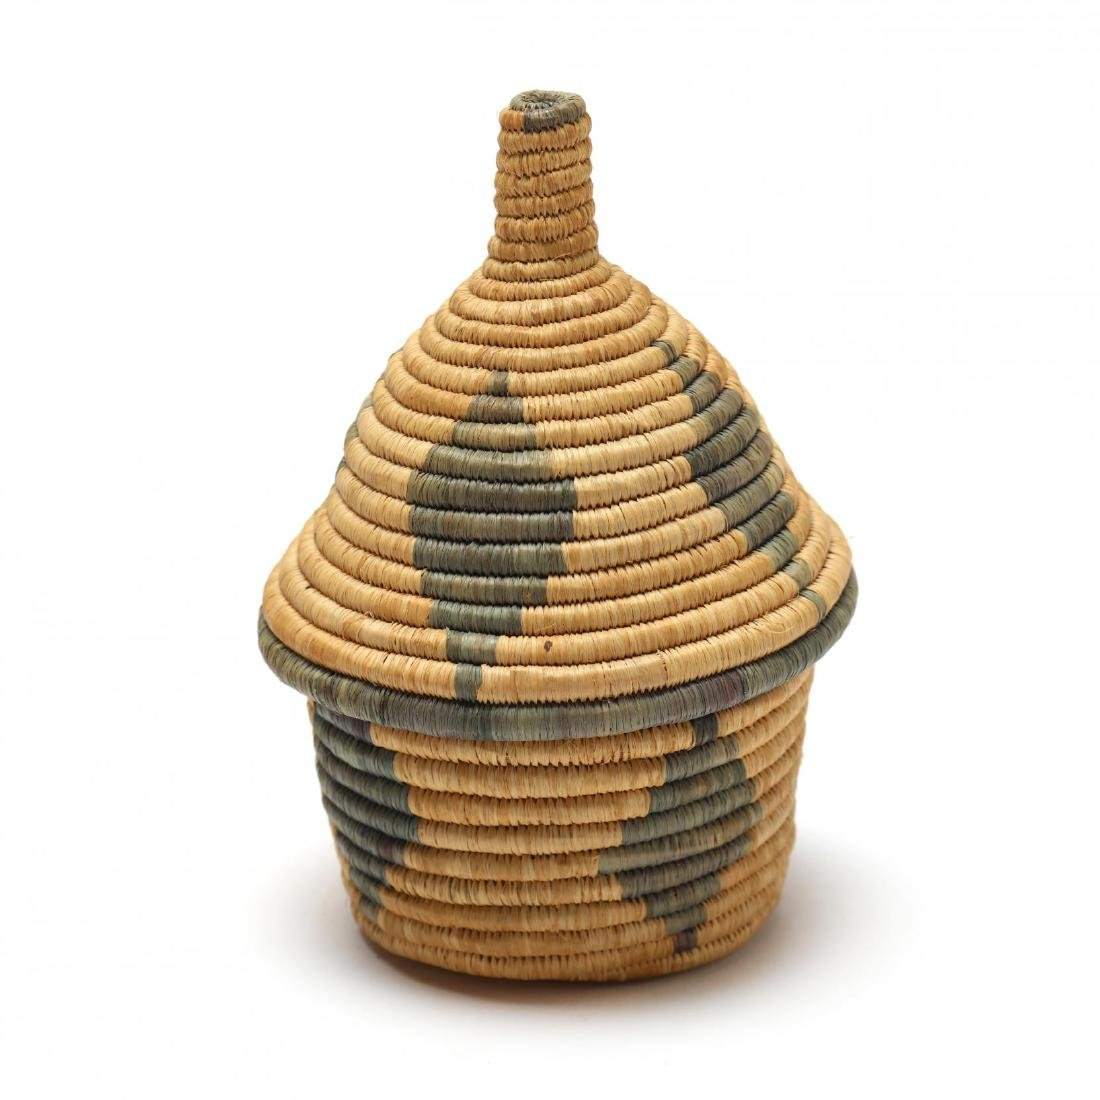 Two African Lidded Tutsi Baskets - 4